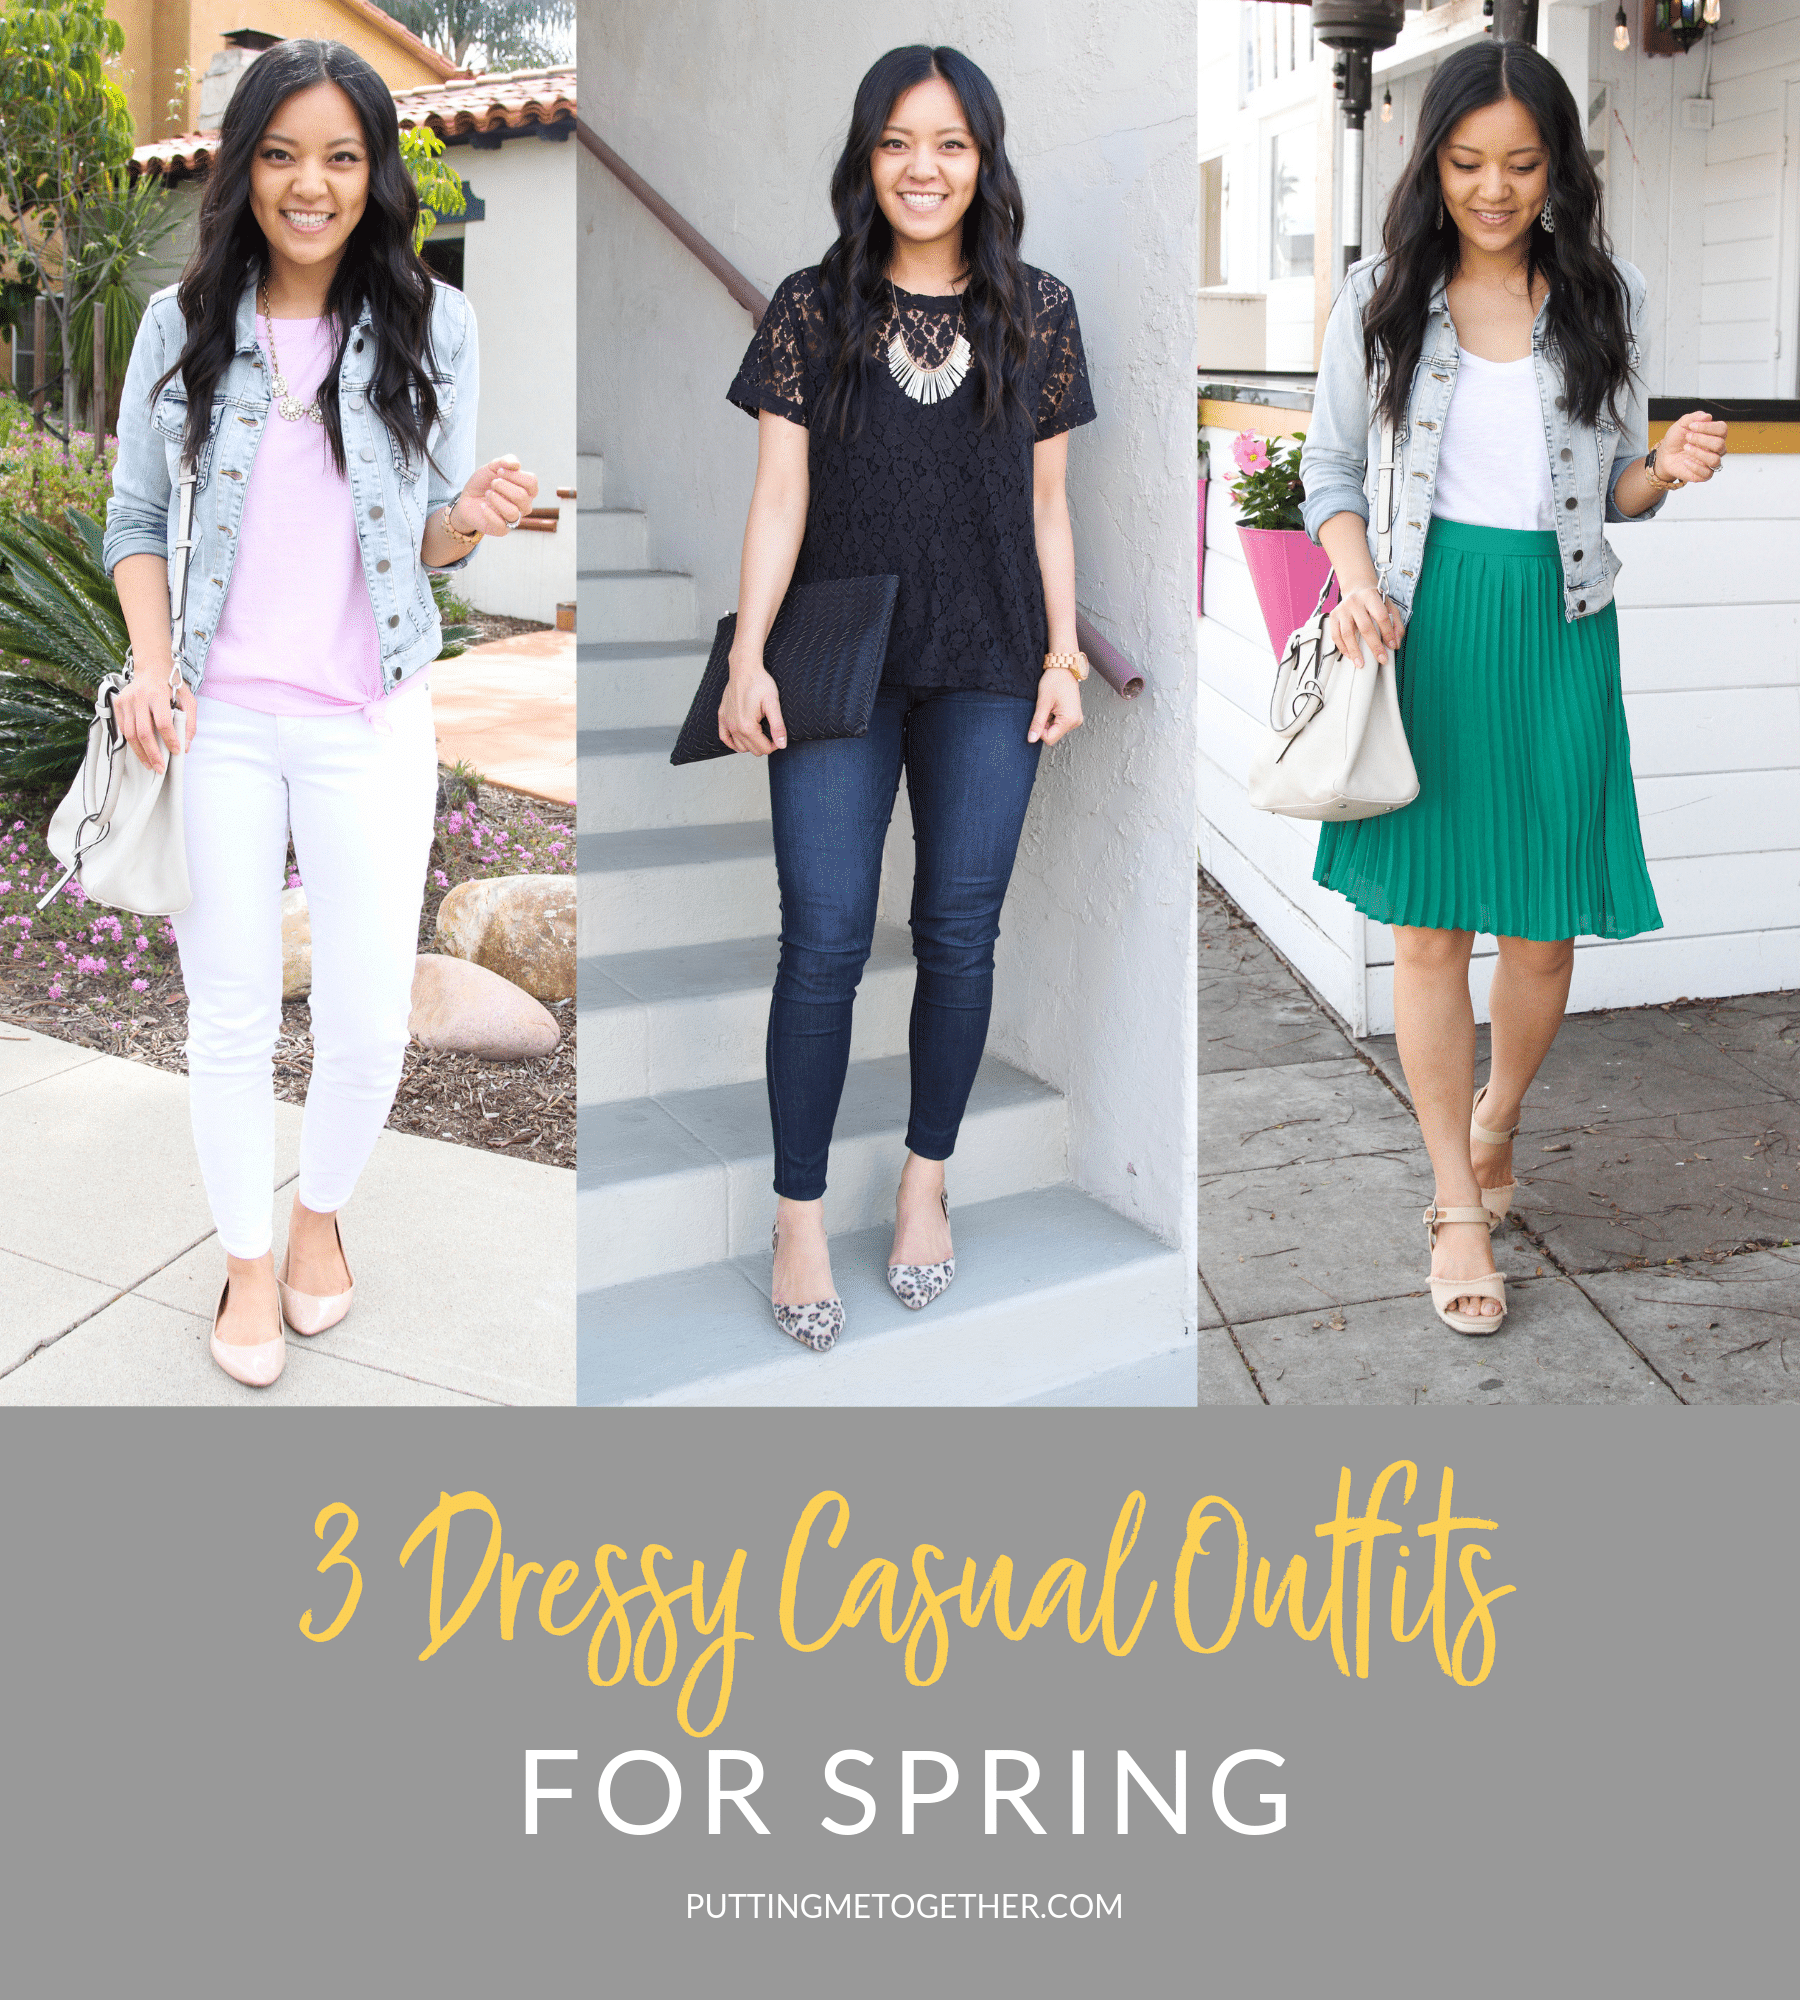 3 Dressy Casual Outfits for Spring